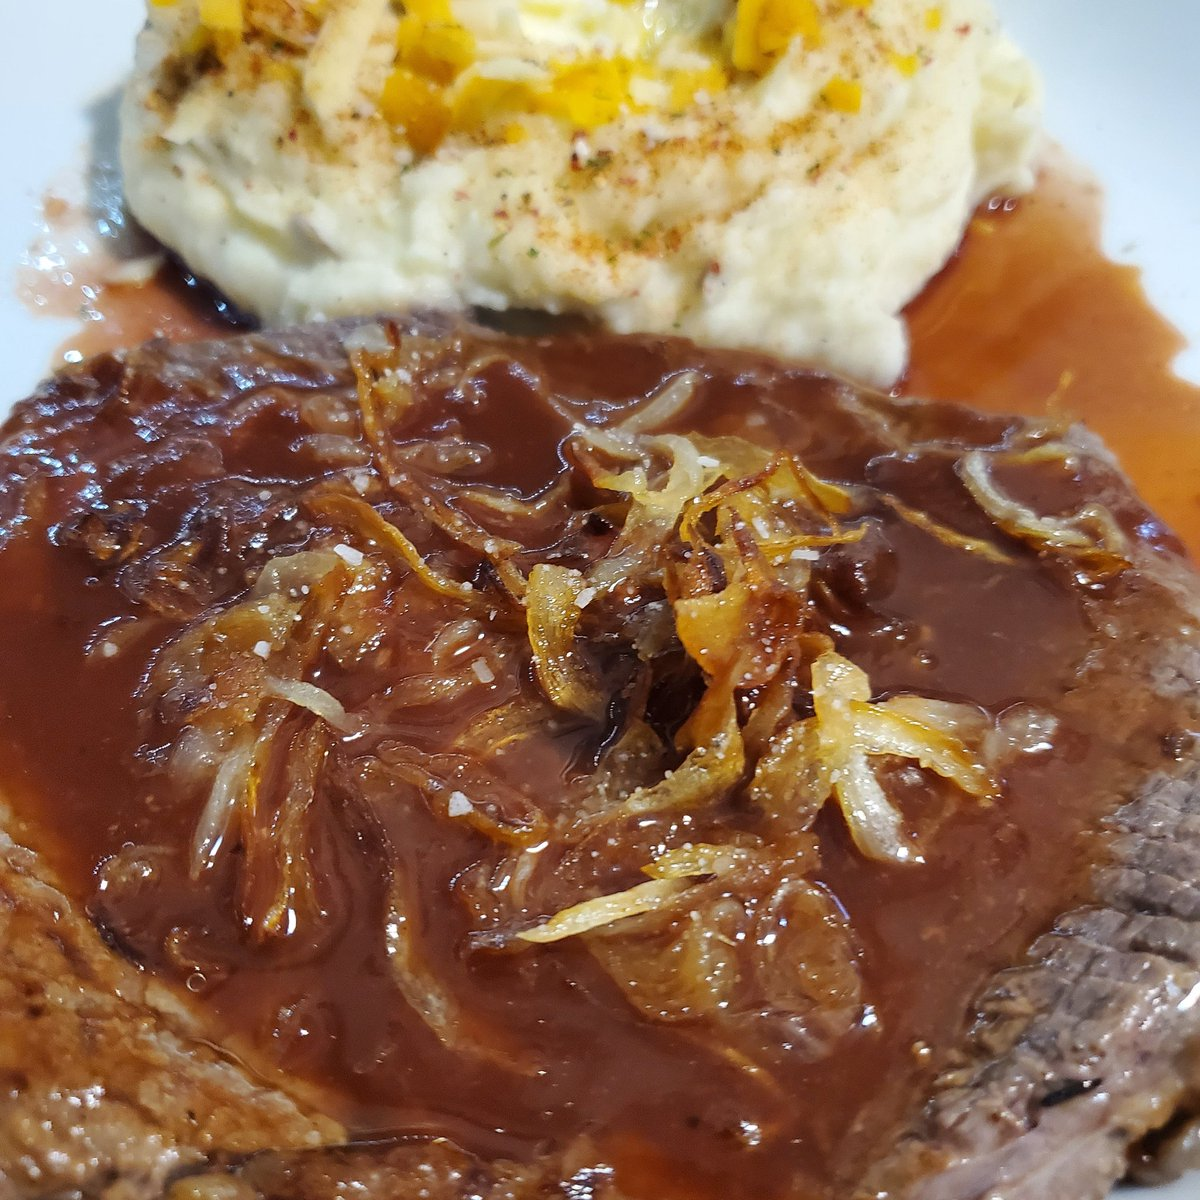 On the menu. Steak with caramelized onions with a homemade steak sauce. Garlic butter mashed taters. #teamchargriller https://t.co/saXShcs0sD